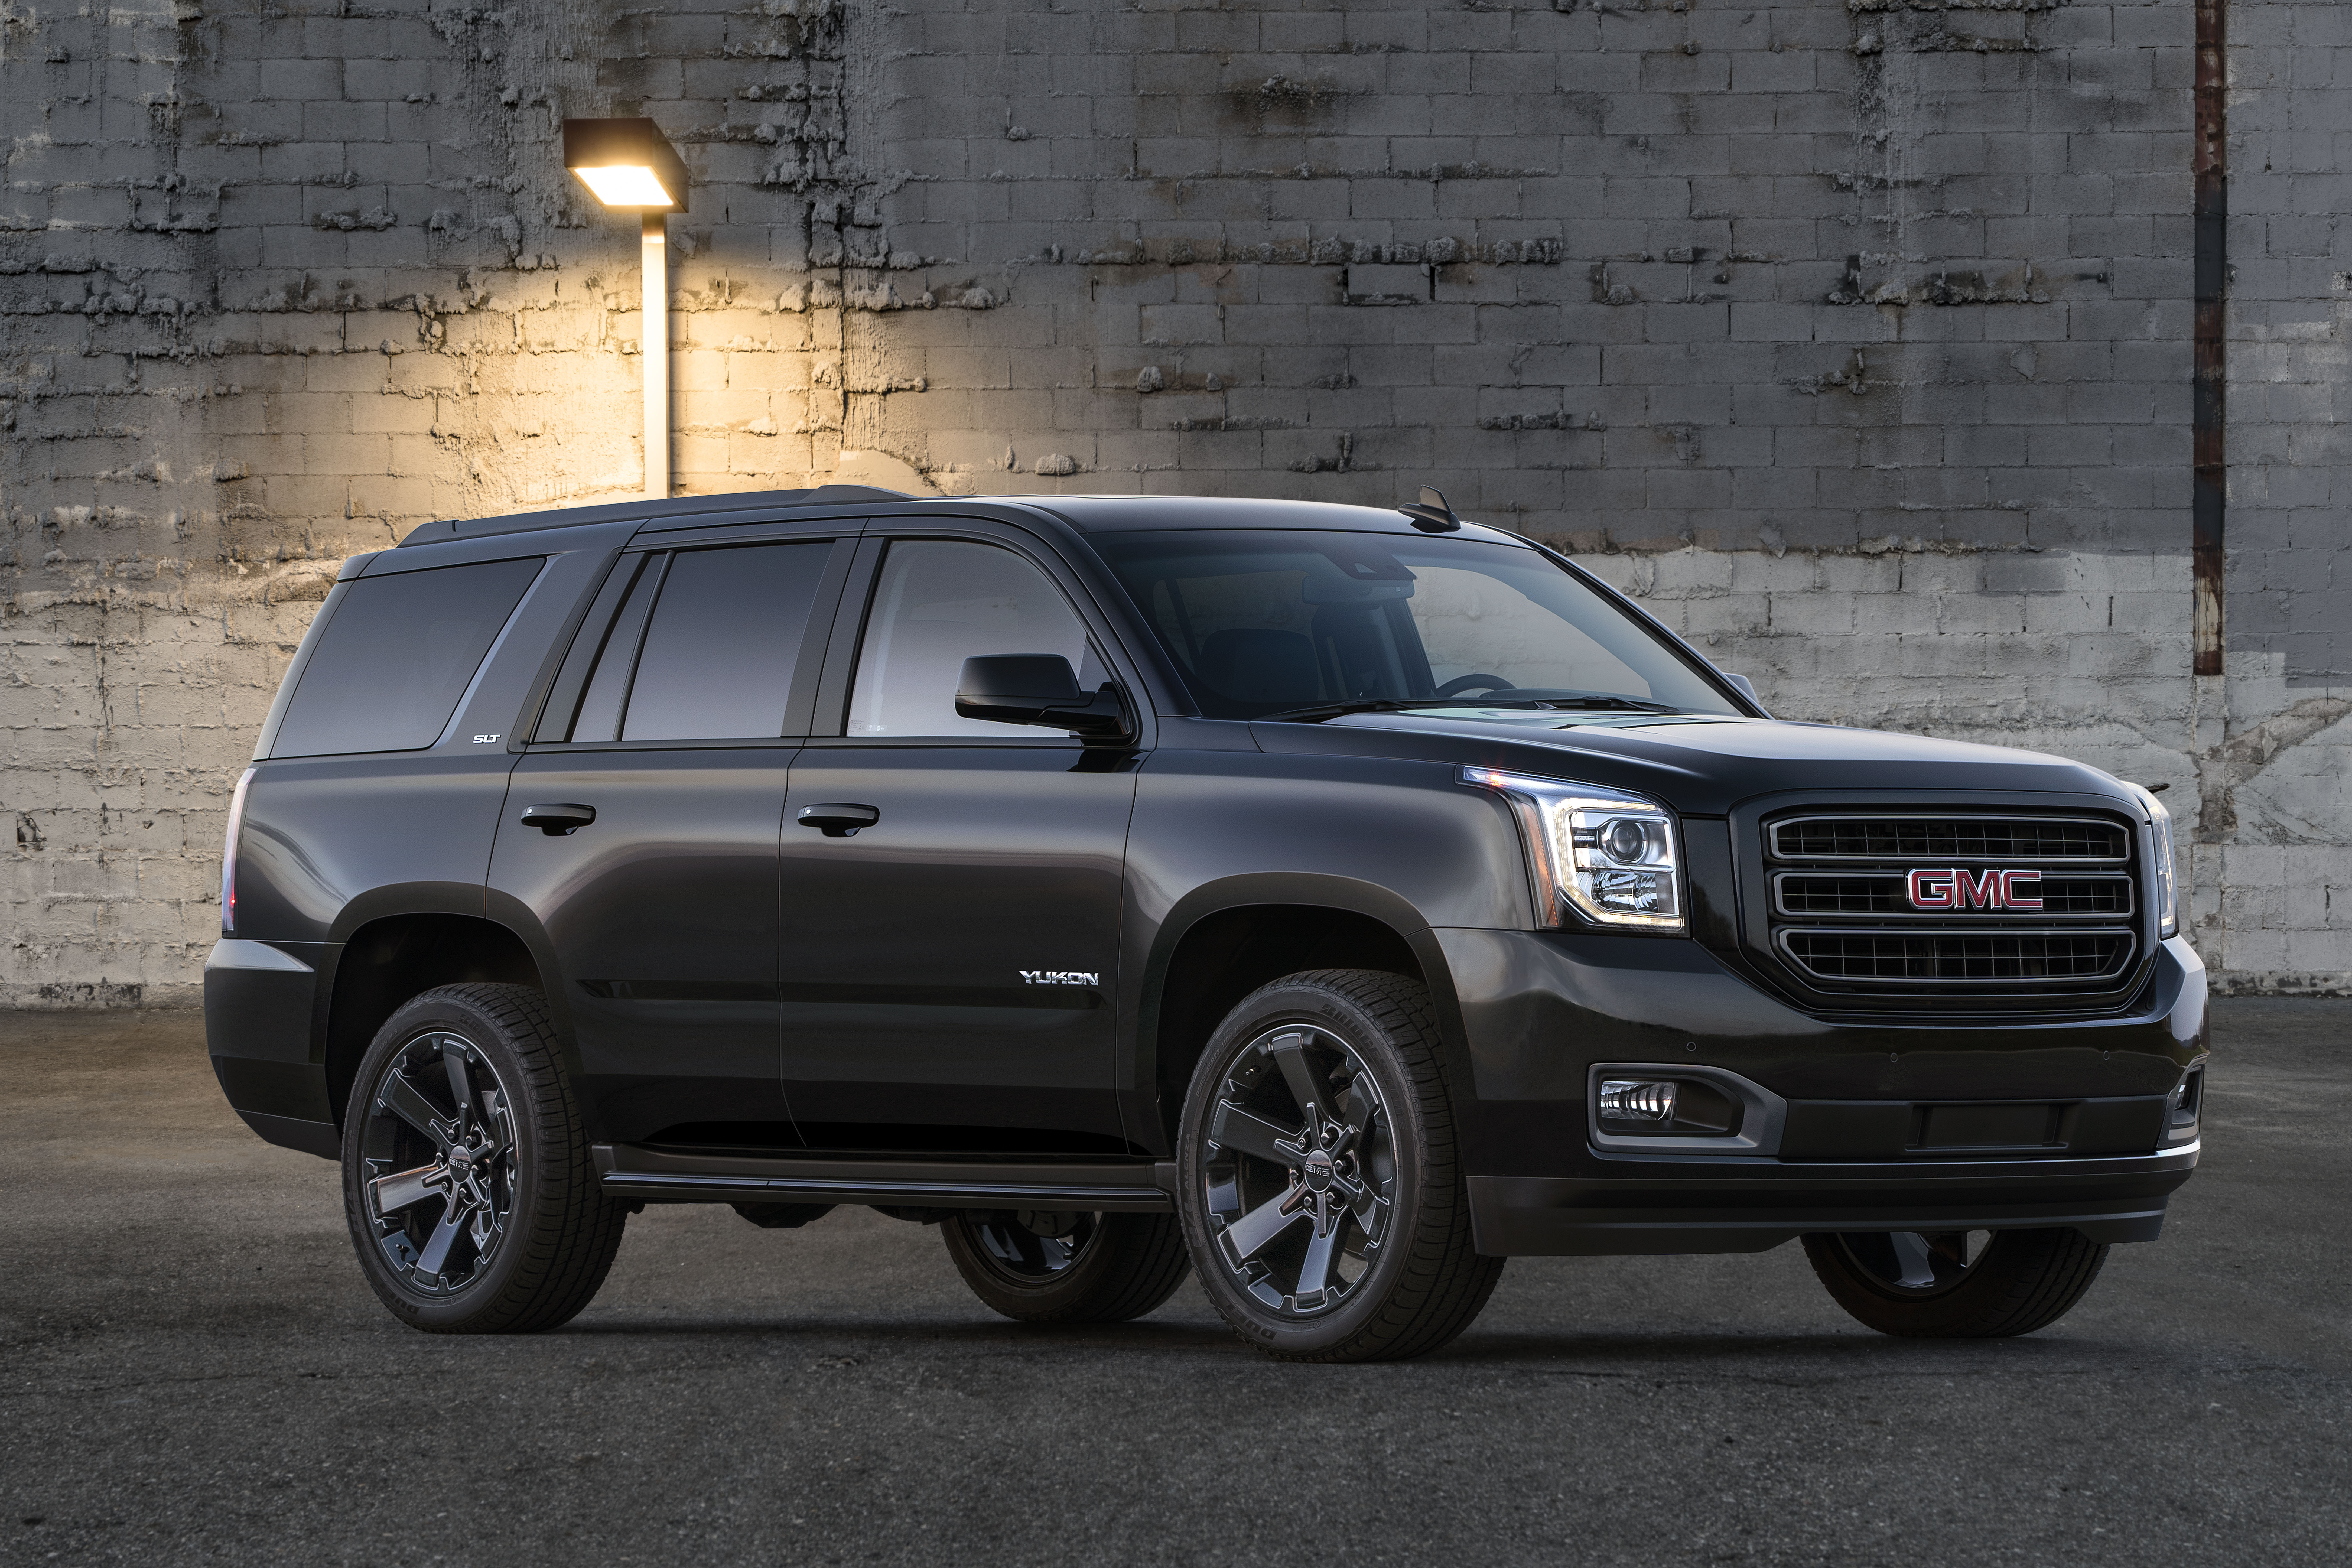 Gmc Introduces 2019 Yukon Graphite Editions